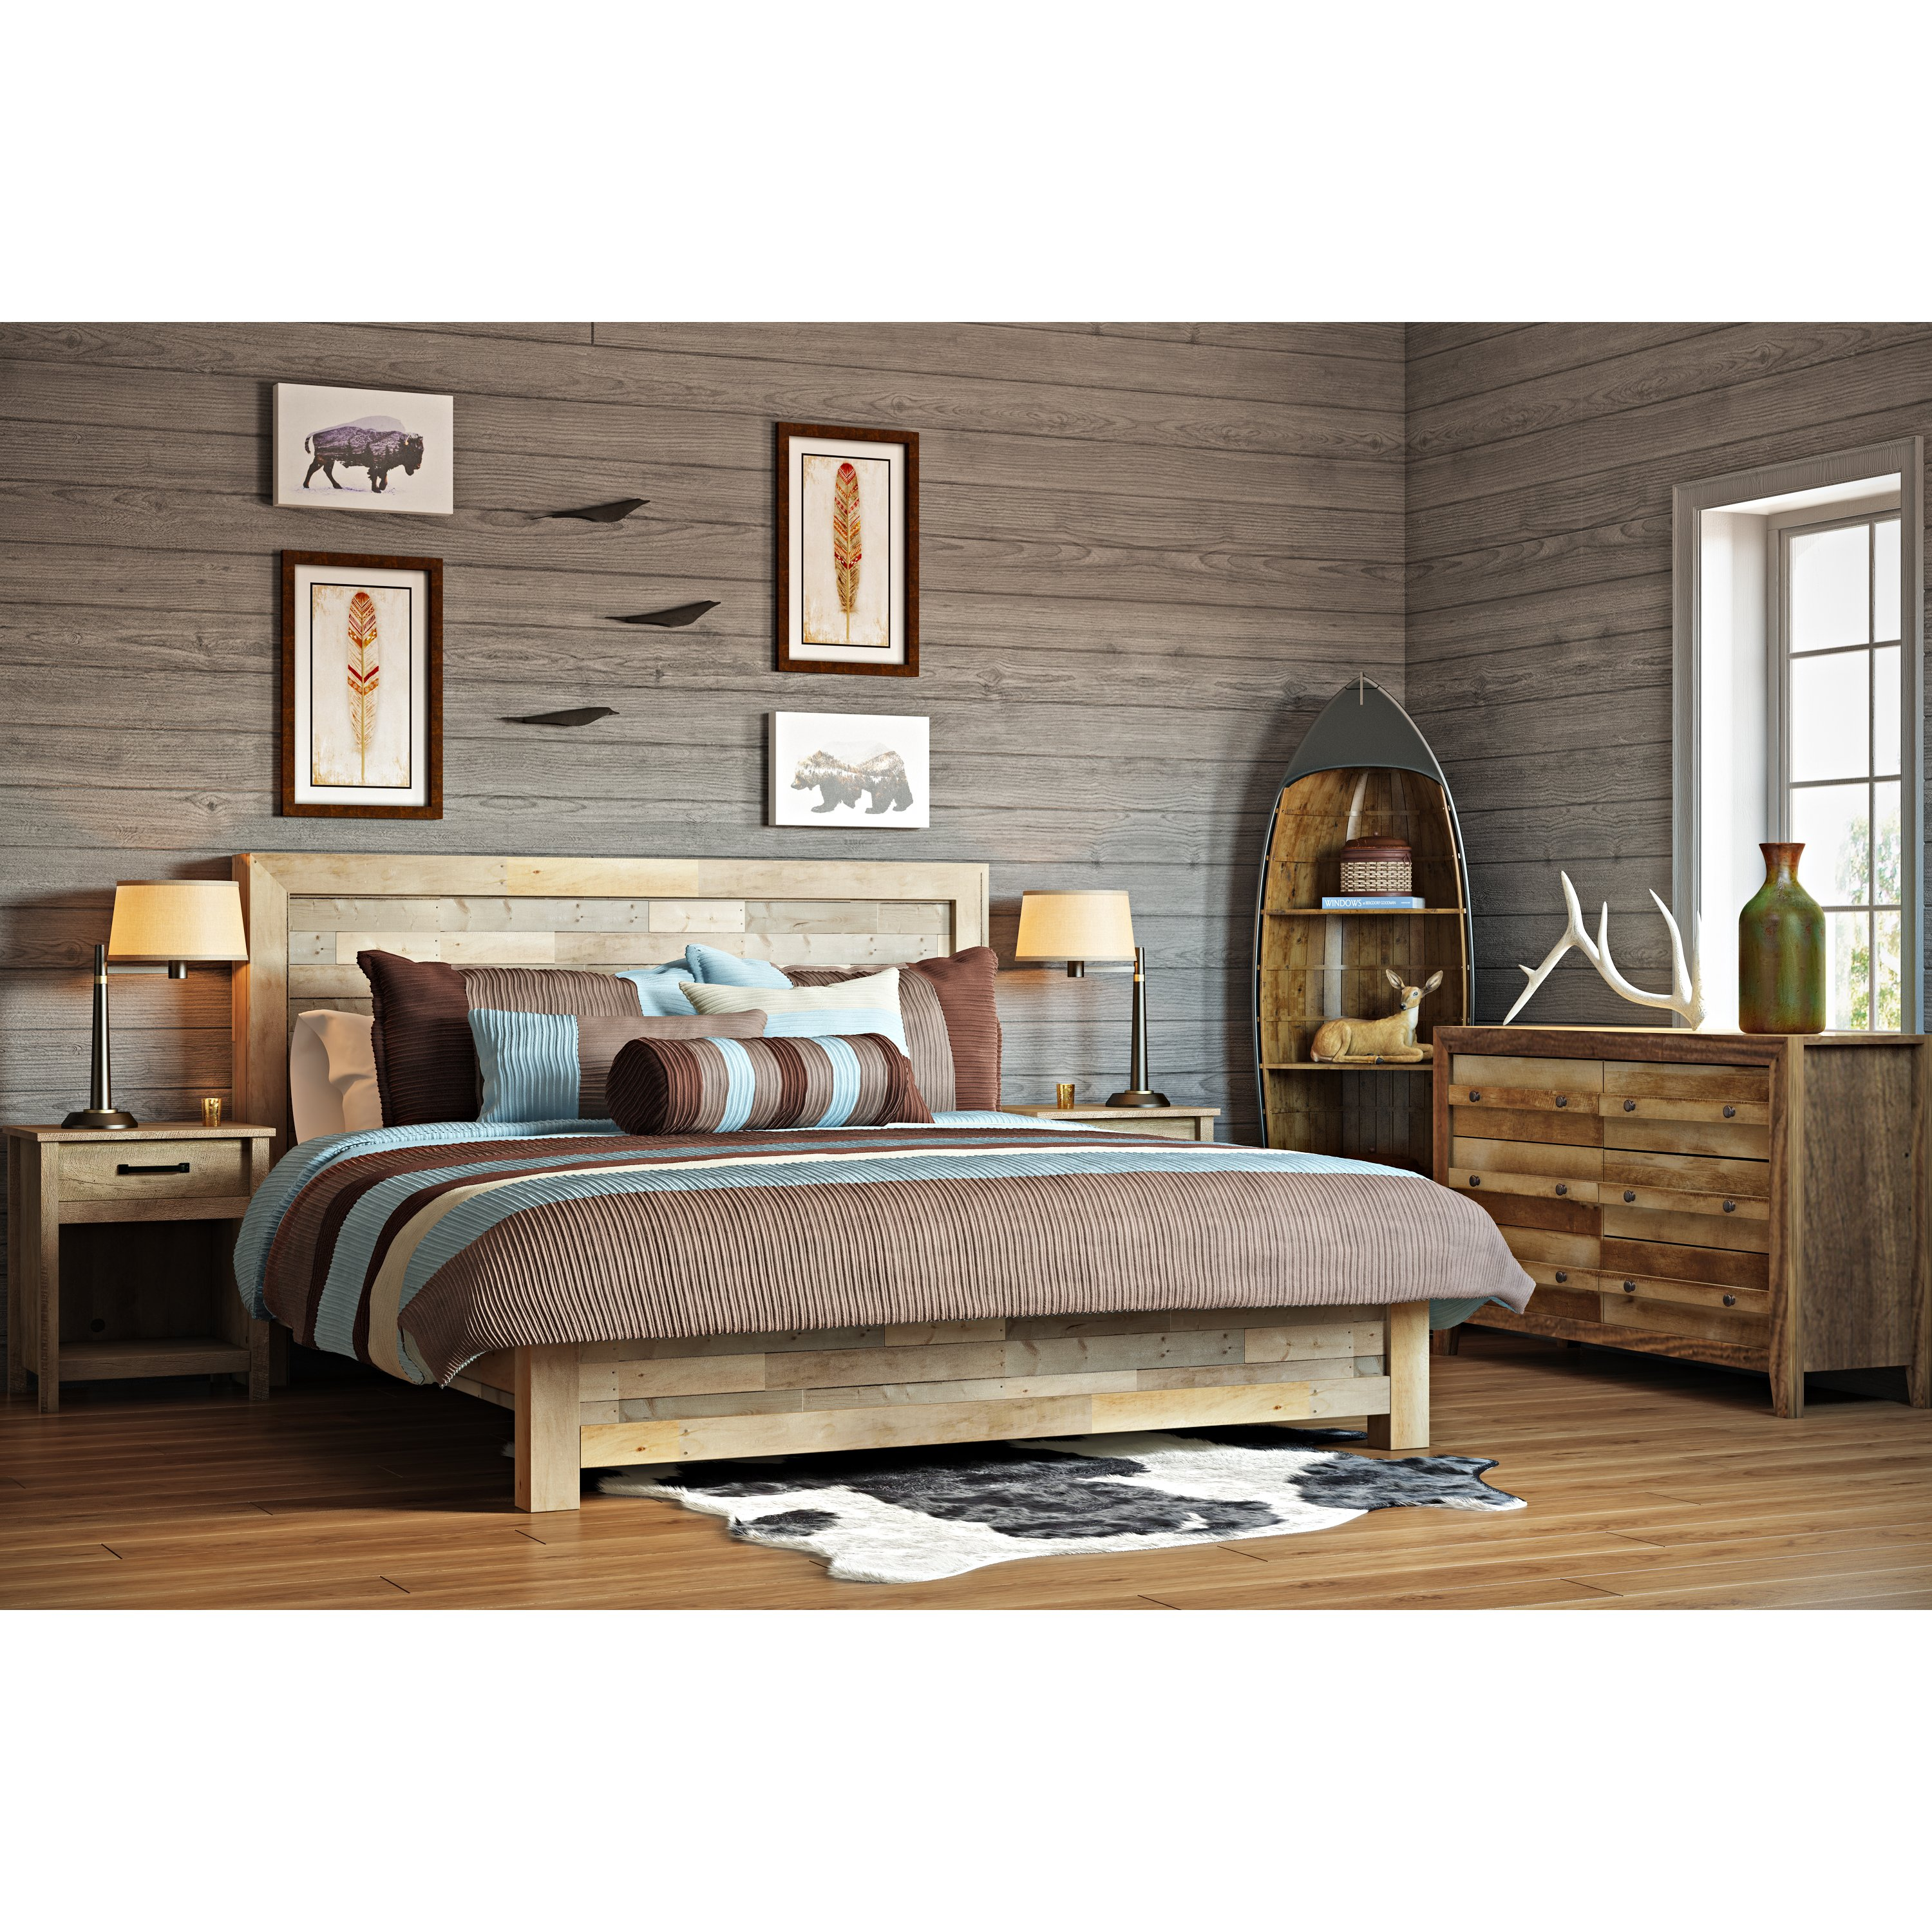 Contact us today for a free case review. Best Coolest El Dorado Furniture Bedroom Sets Atmosphere ...